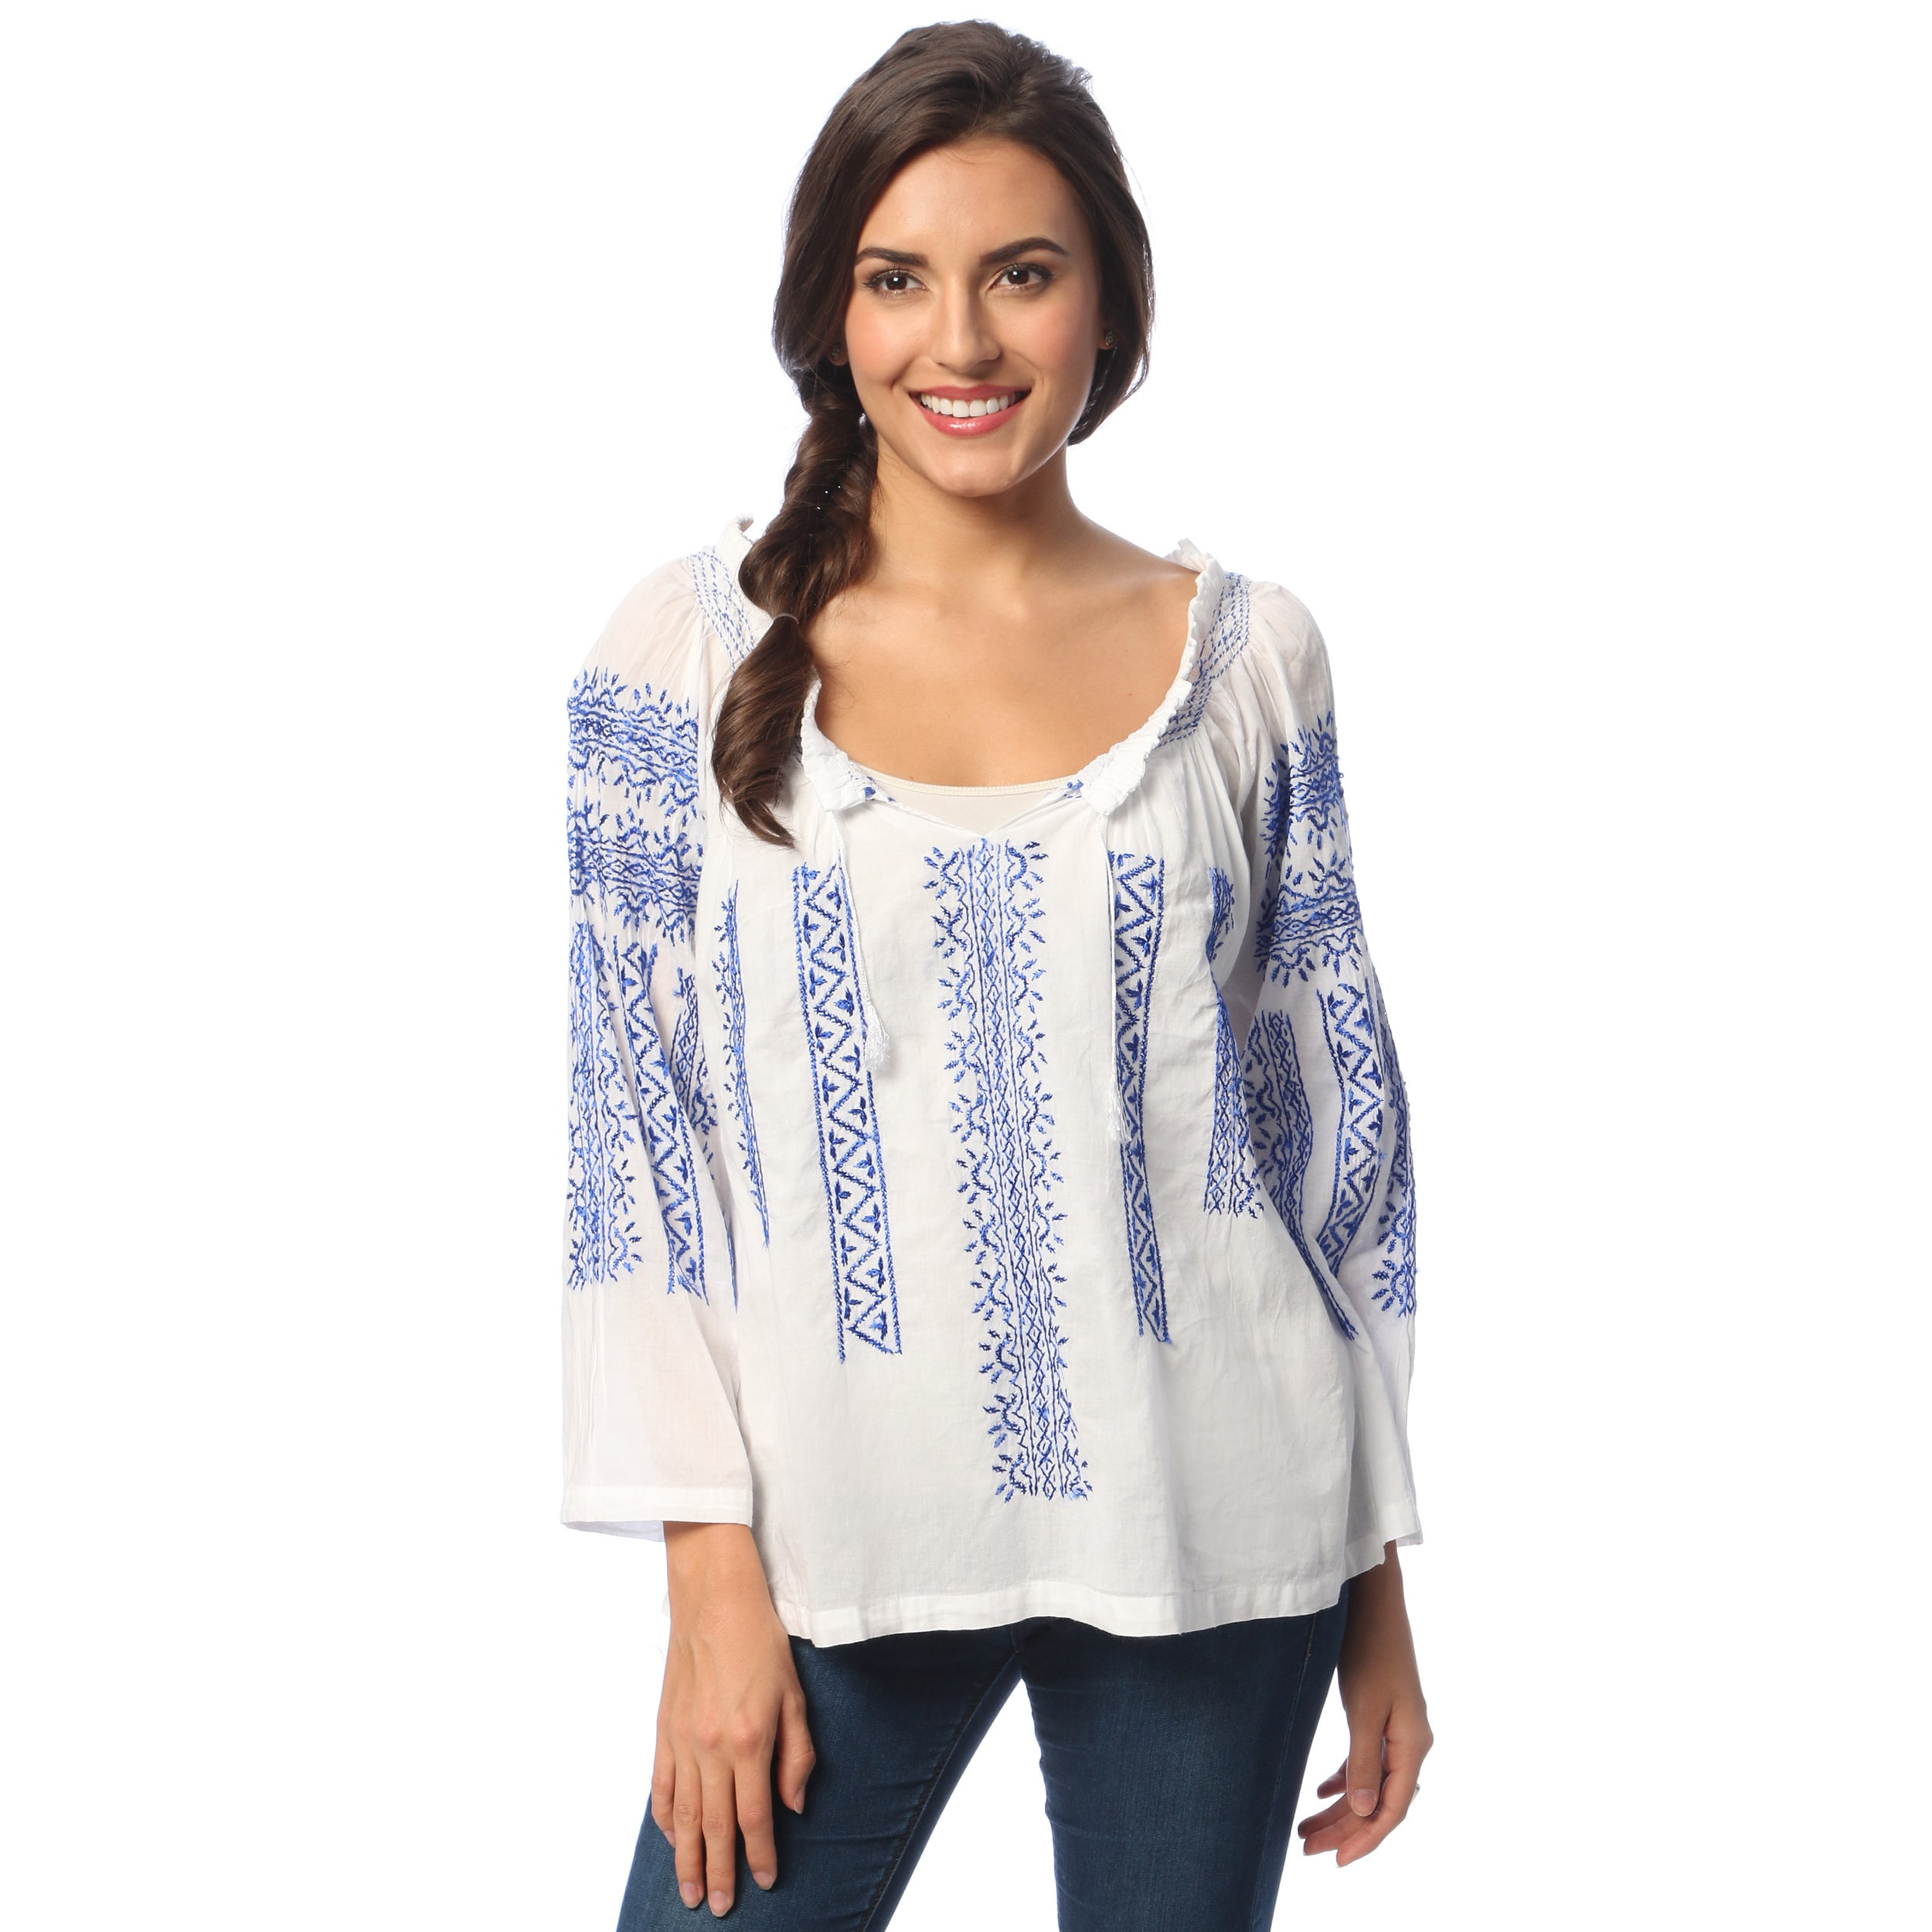 limited guantity famous brand get online La Cera Women's White/ Blue Hand-embroidered Peasant Top